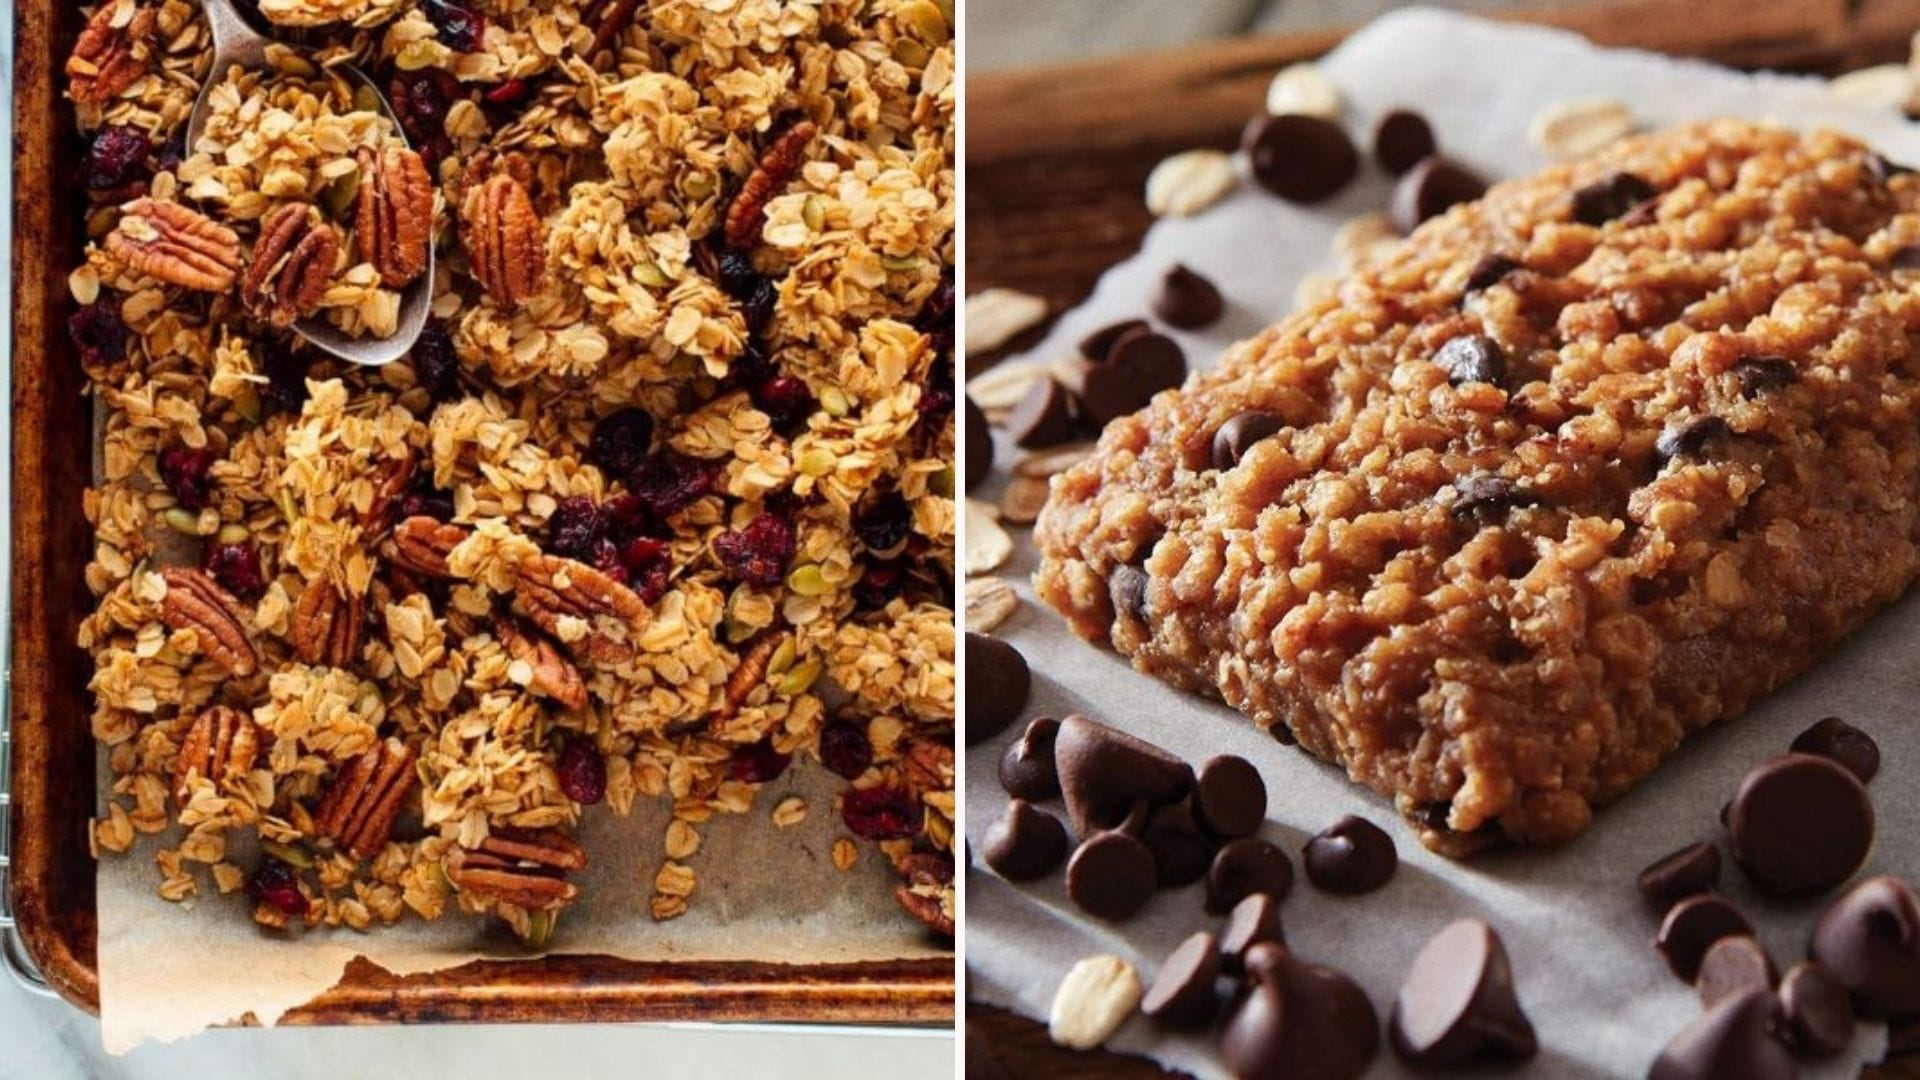 A baking pan full of homemade granola and a CLIF protein bar.